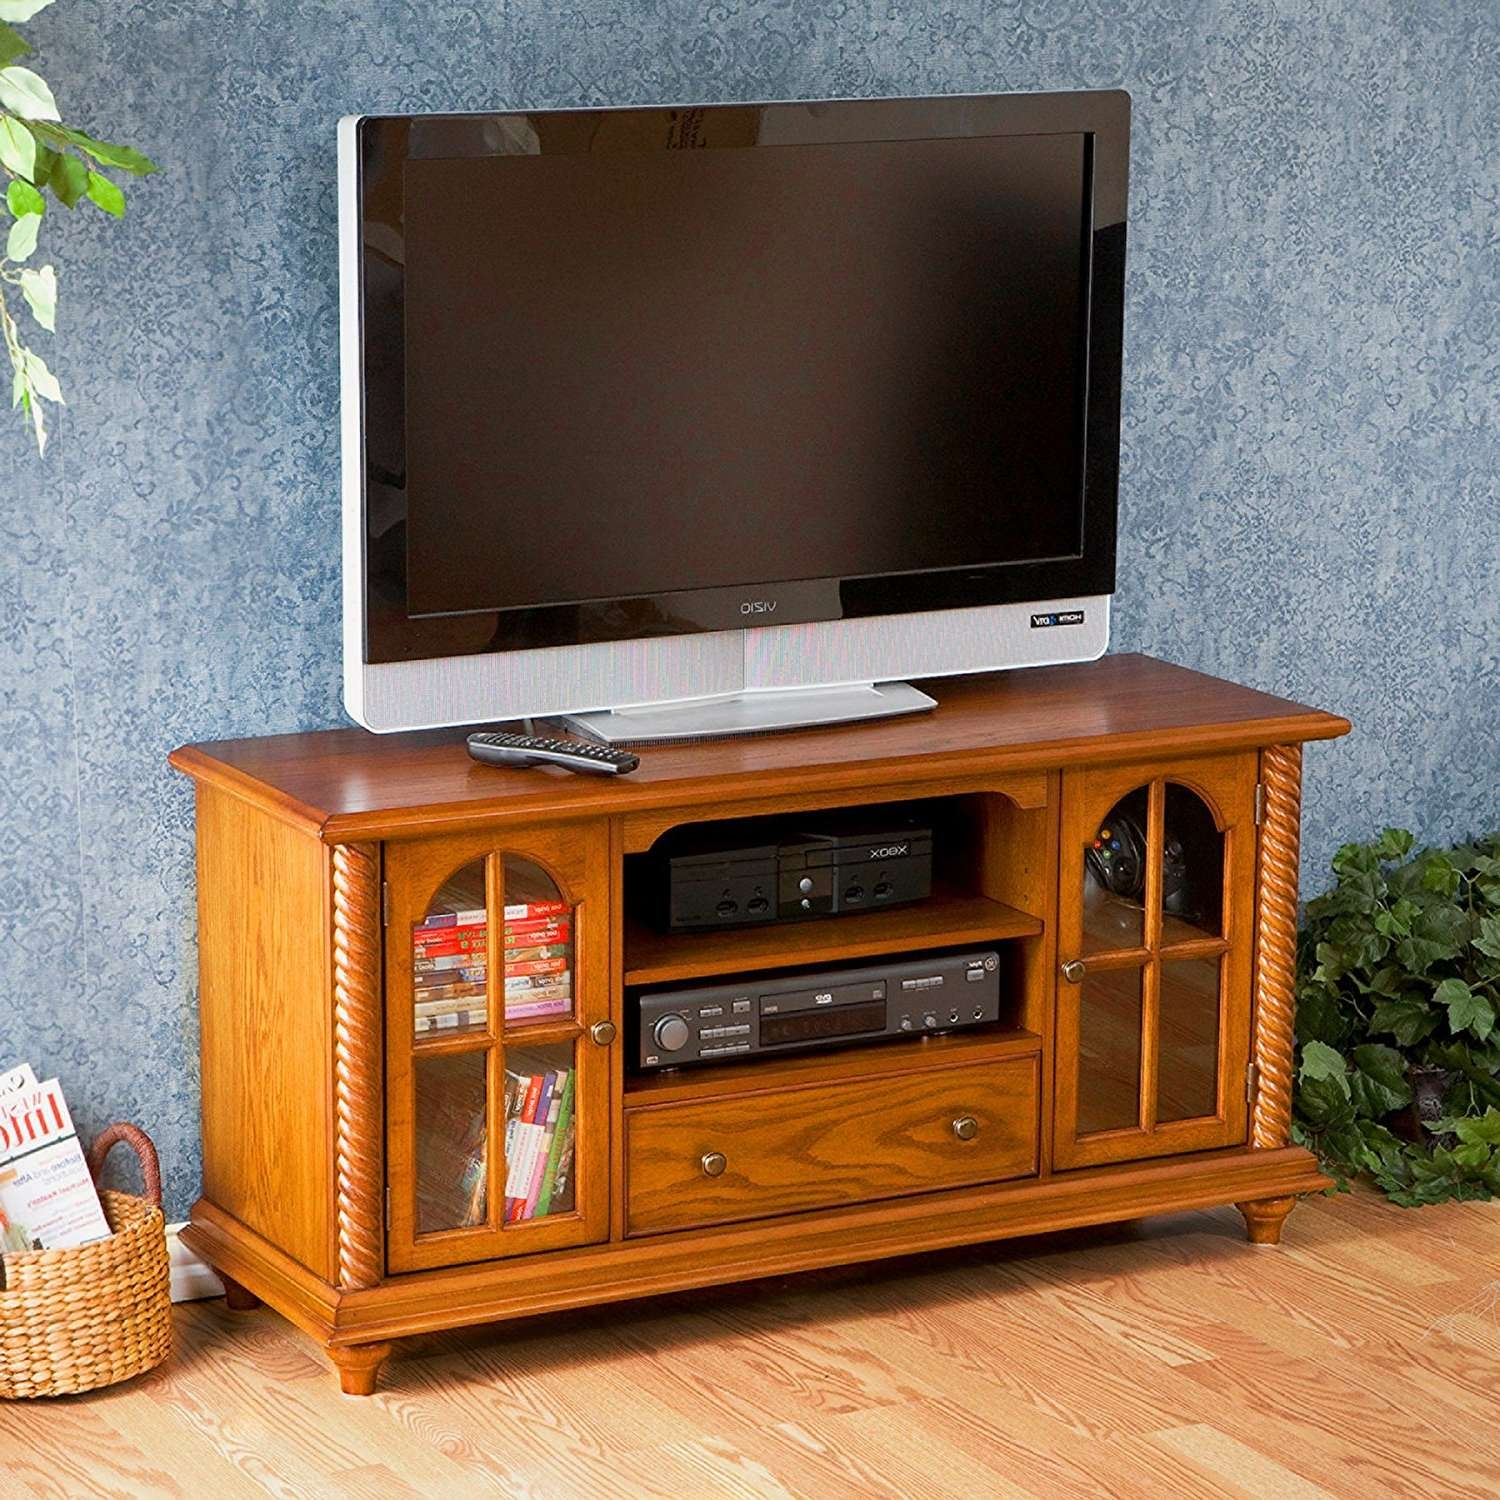 Innovative Designs Oak Tv Console | Marku Home Design With Oak Tv Stands For Flat Screens (View 9 of 15)